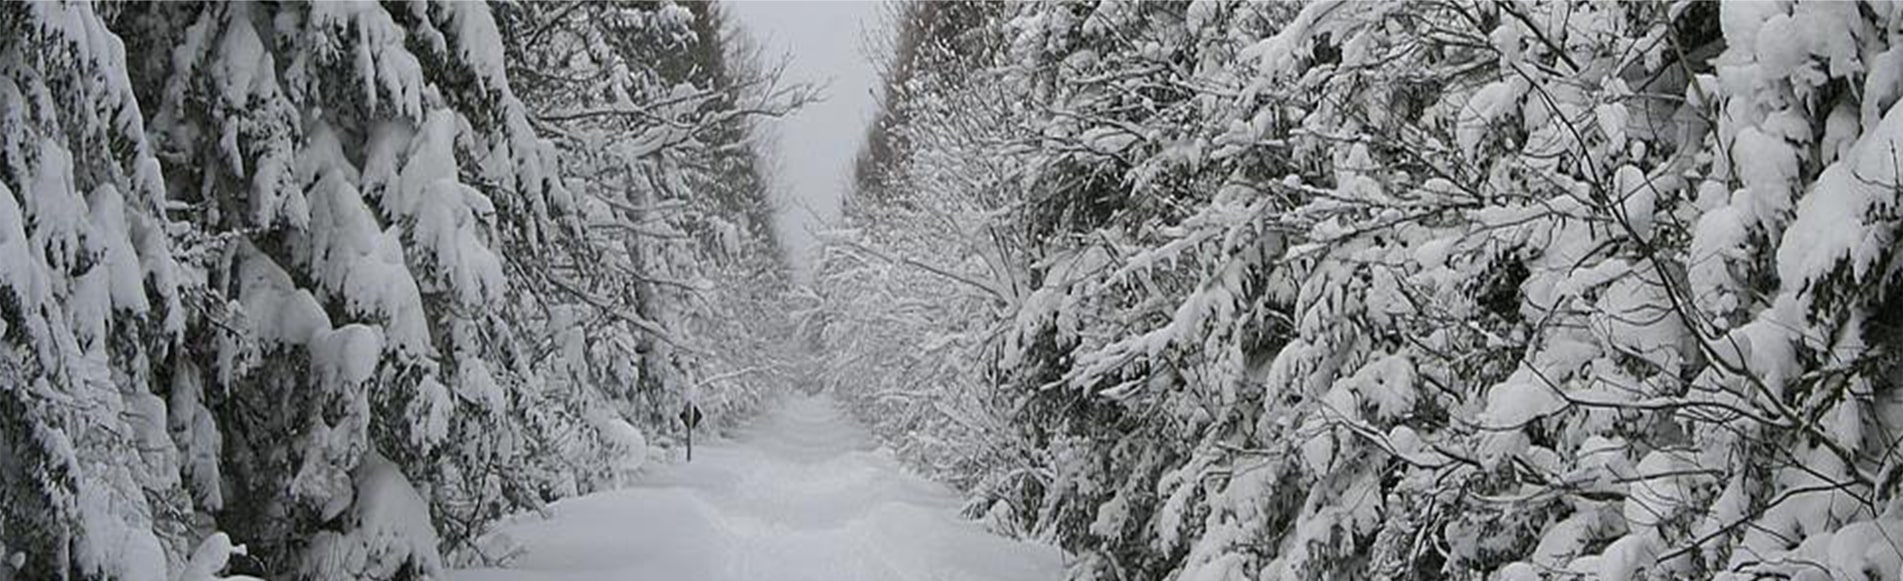 Snowmobile trail in winter